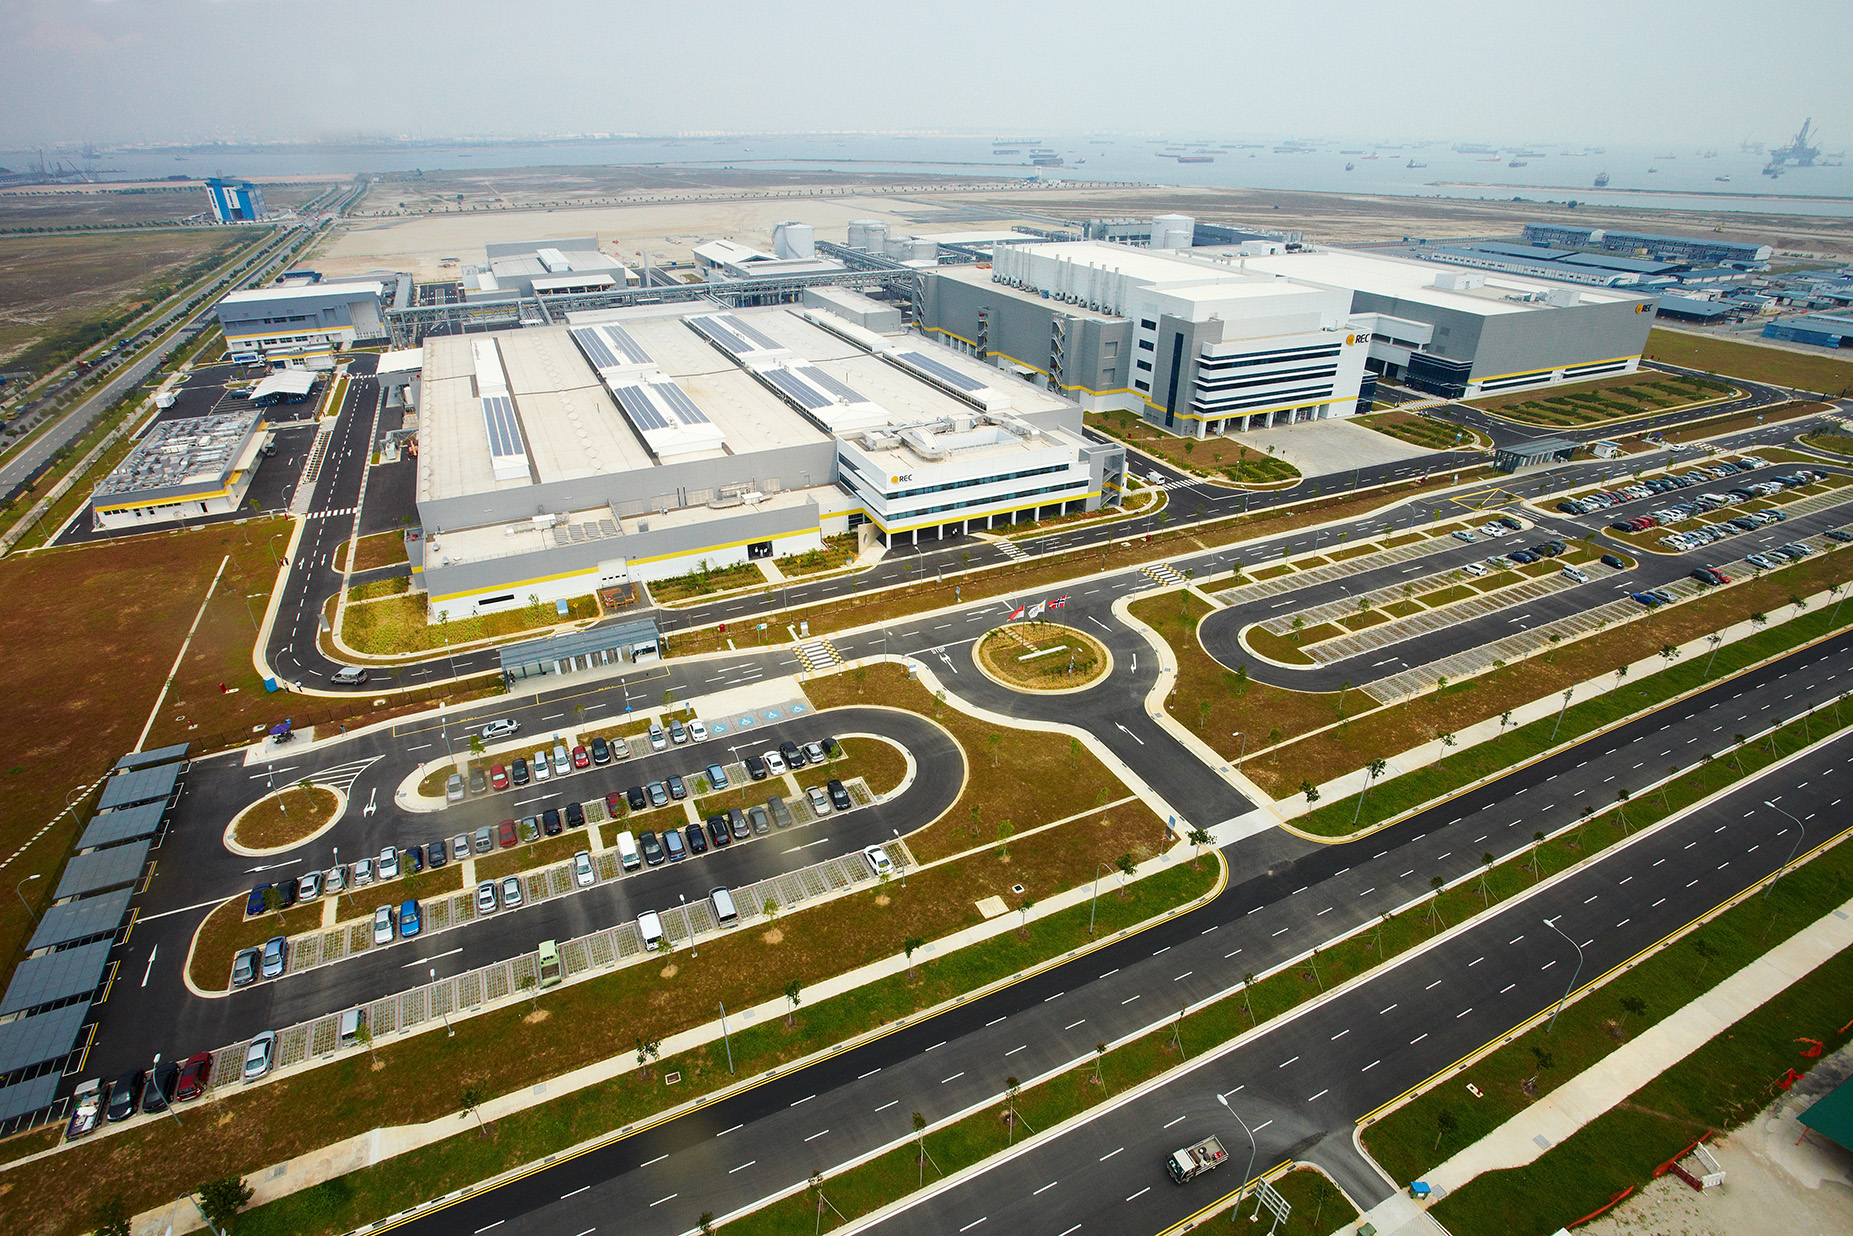 The company has around 1,500MW of module capacity in Singapore. The ingot/wafer facilities are on the left, while cell and module facilities on the right of the picture. Image: REC Group